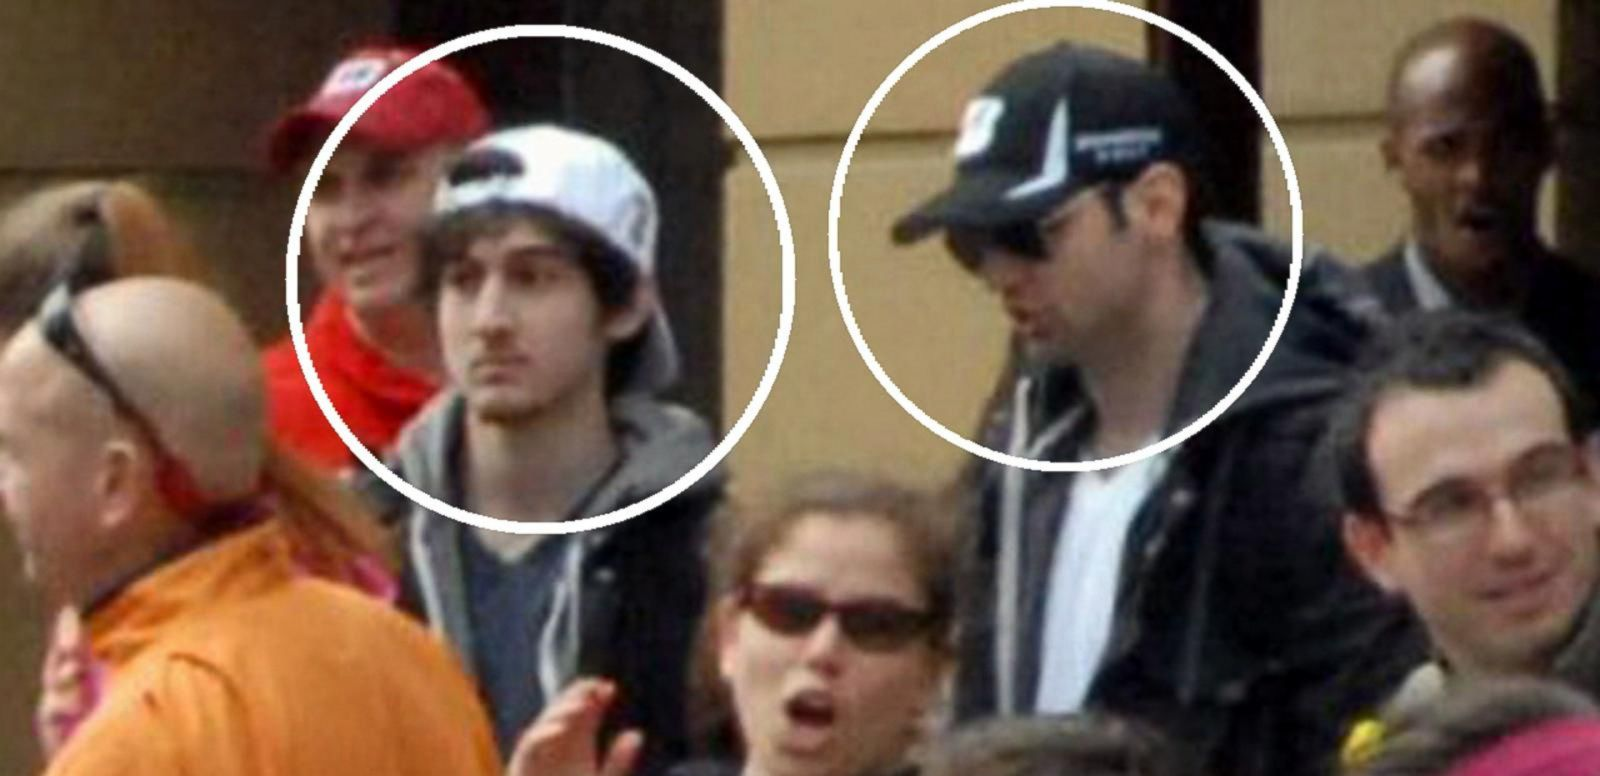 VIDEO: Dzhokhar Tsarnaev Defense Asks for Acquittal